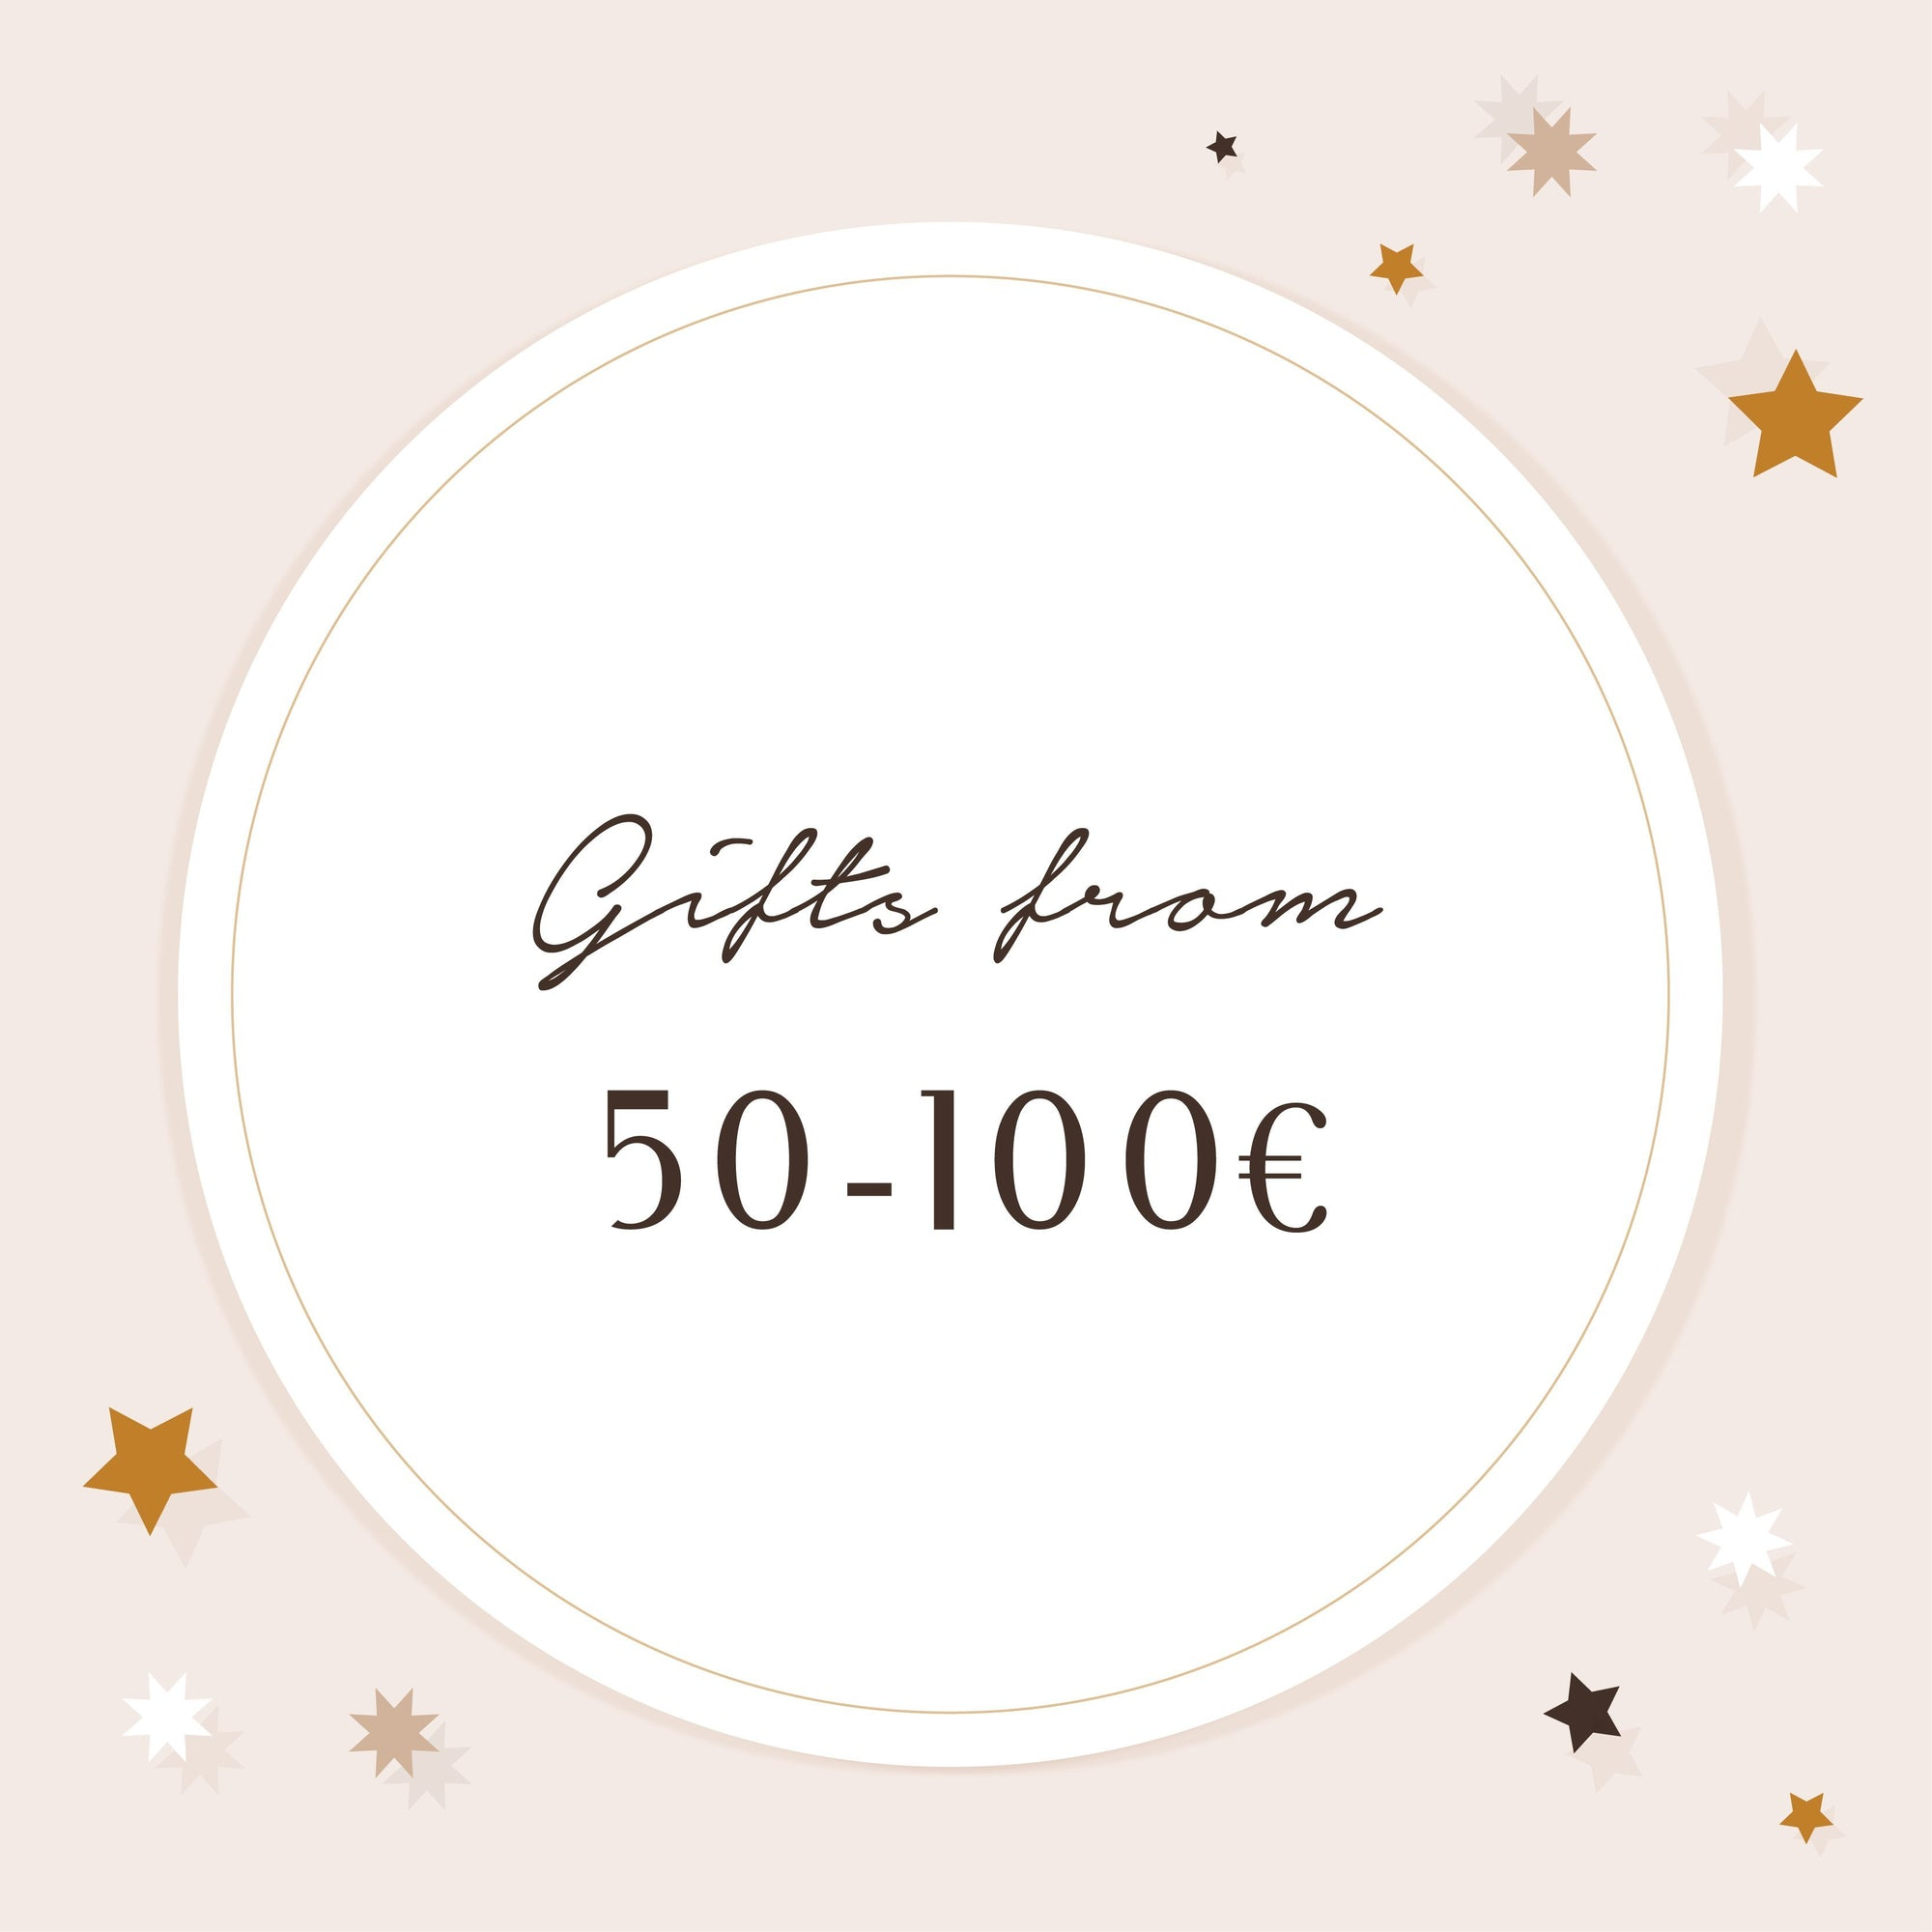 Gifts from 50-100€ - Genuine Selection